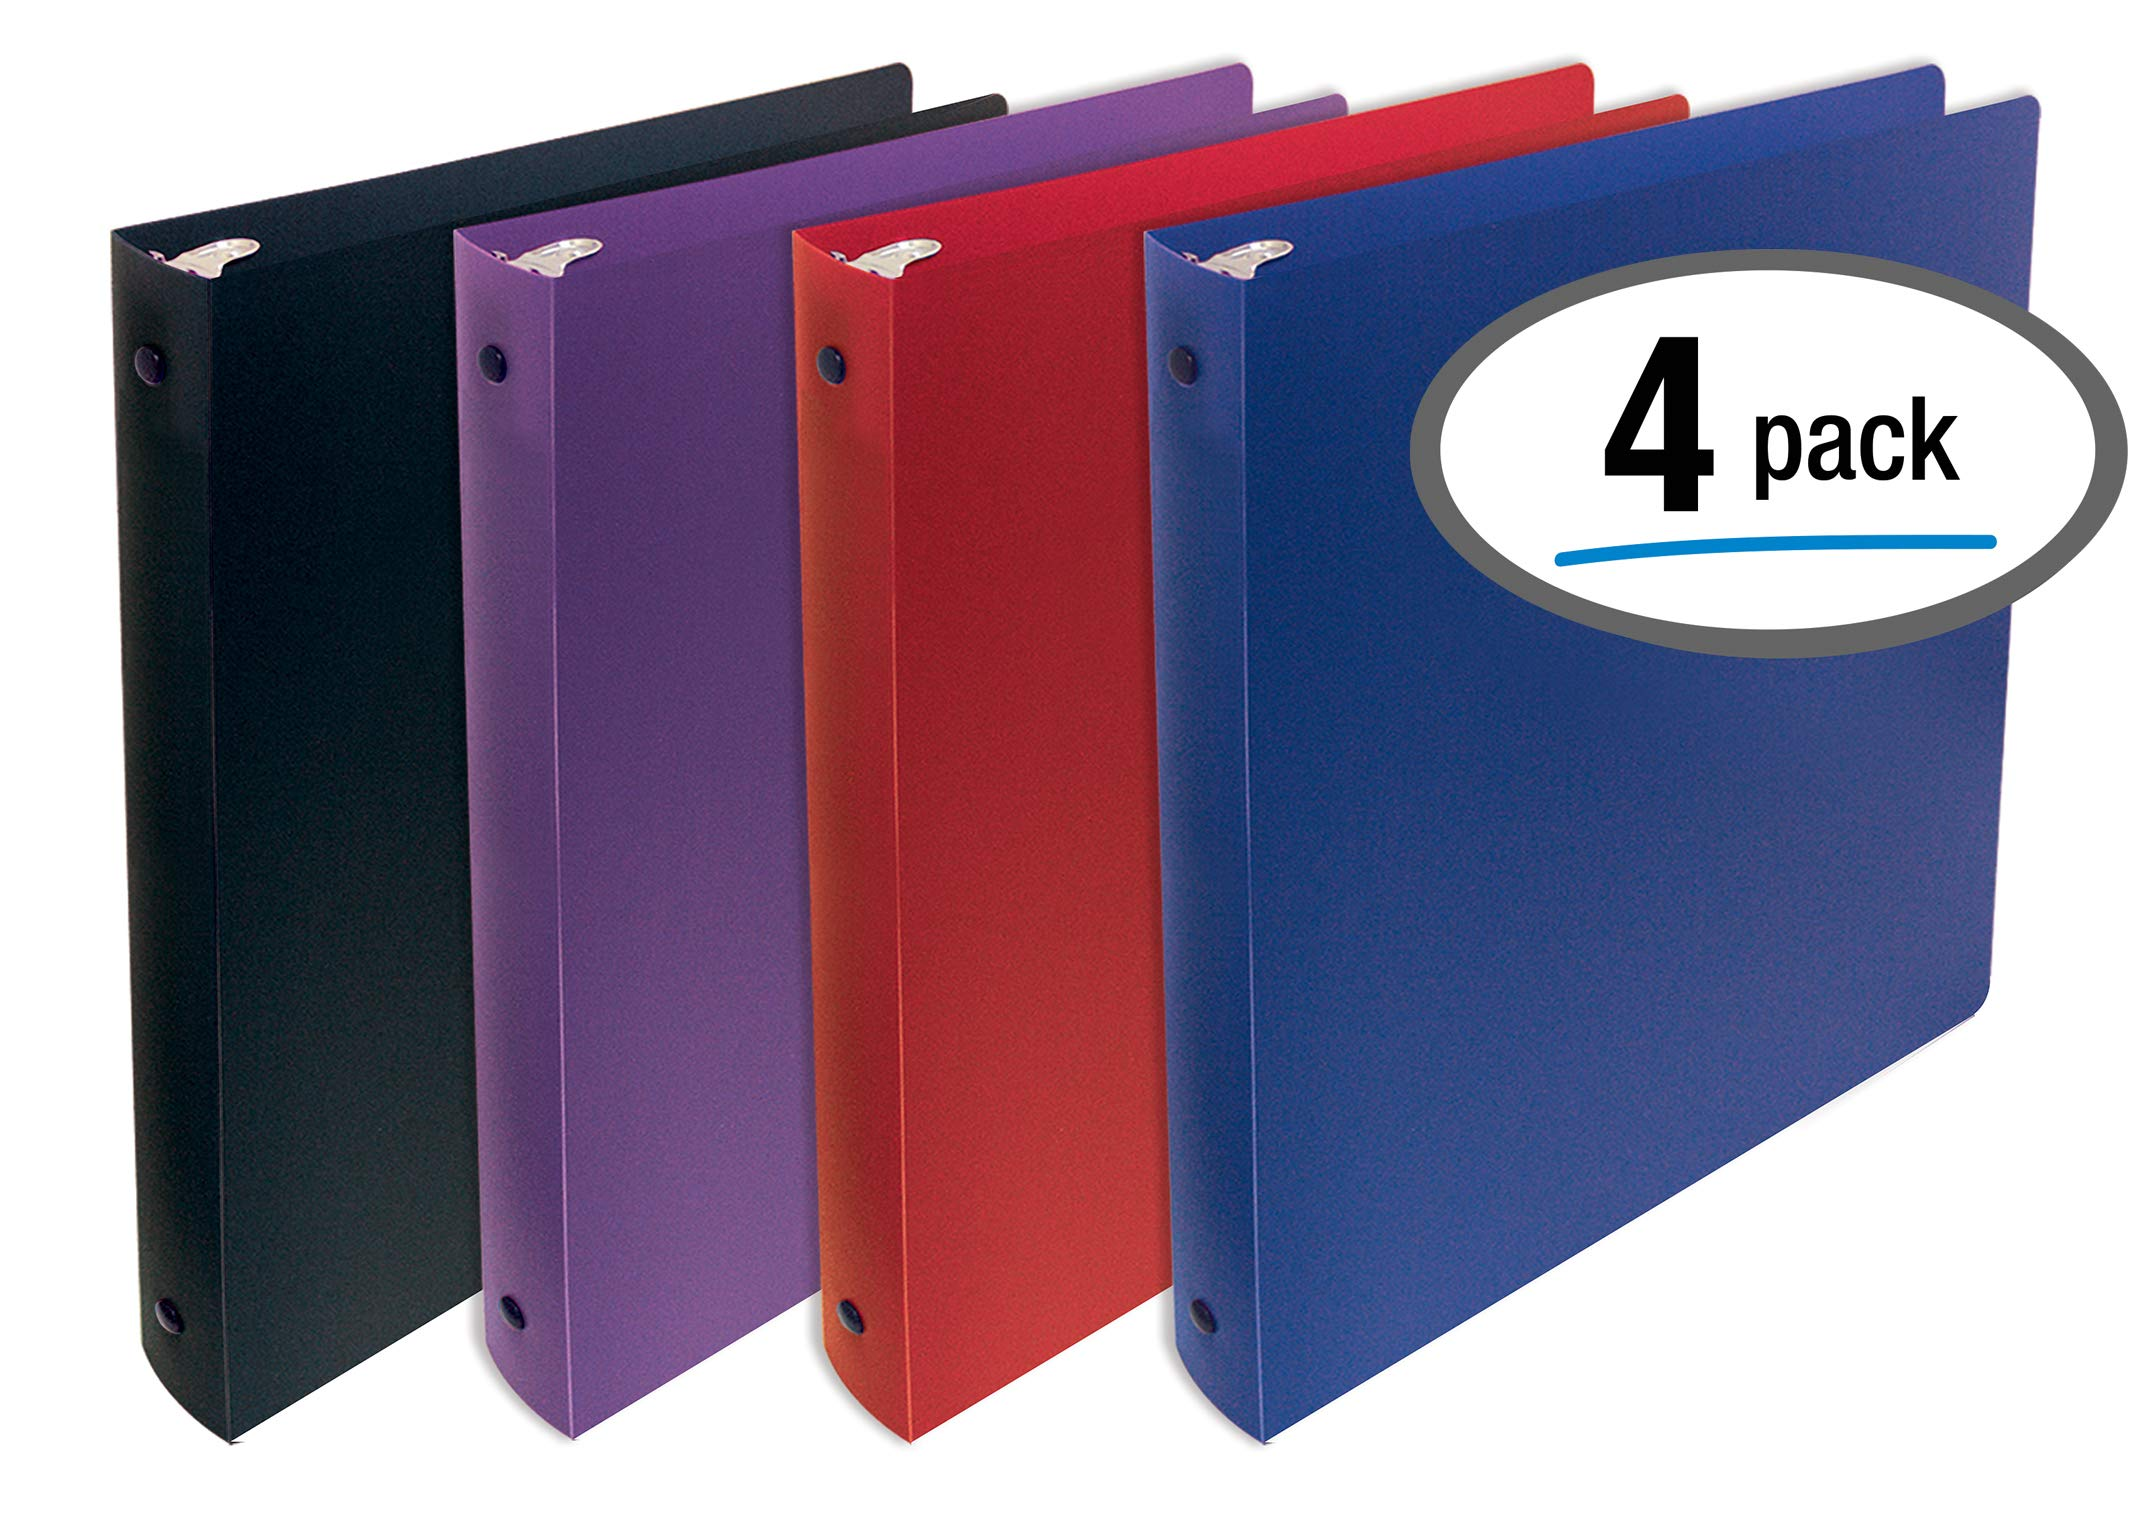 Better Office Products, 3 Ring Poly Binder with Pocket, 1 inch, Letter Size, 4 Pack-Red, Blue, Purple, and Black